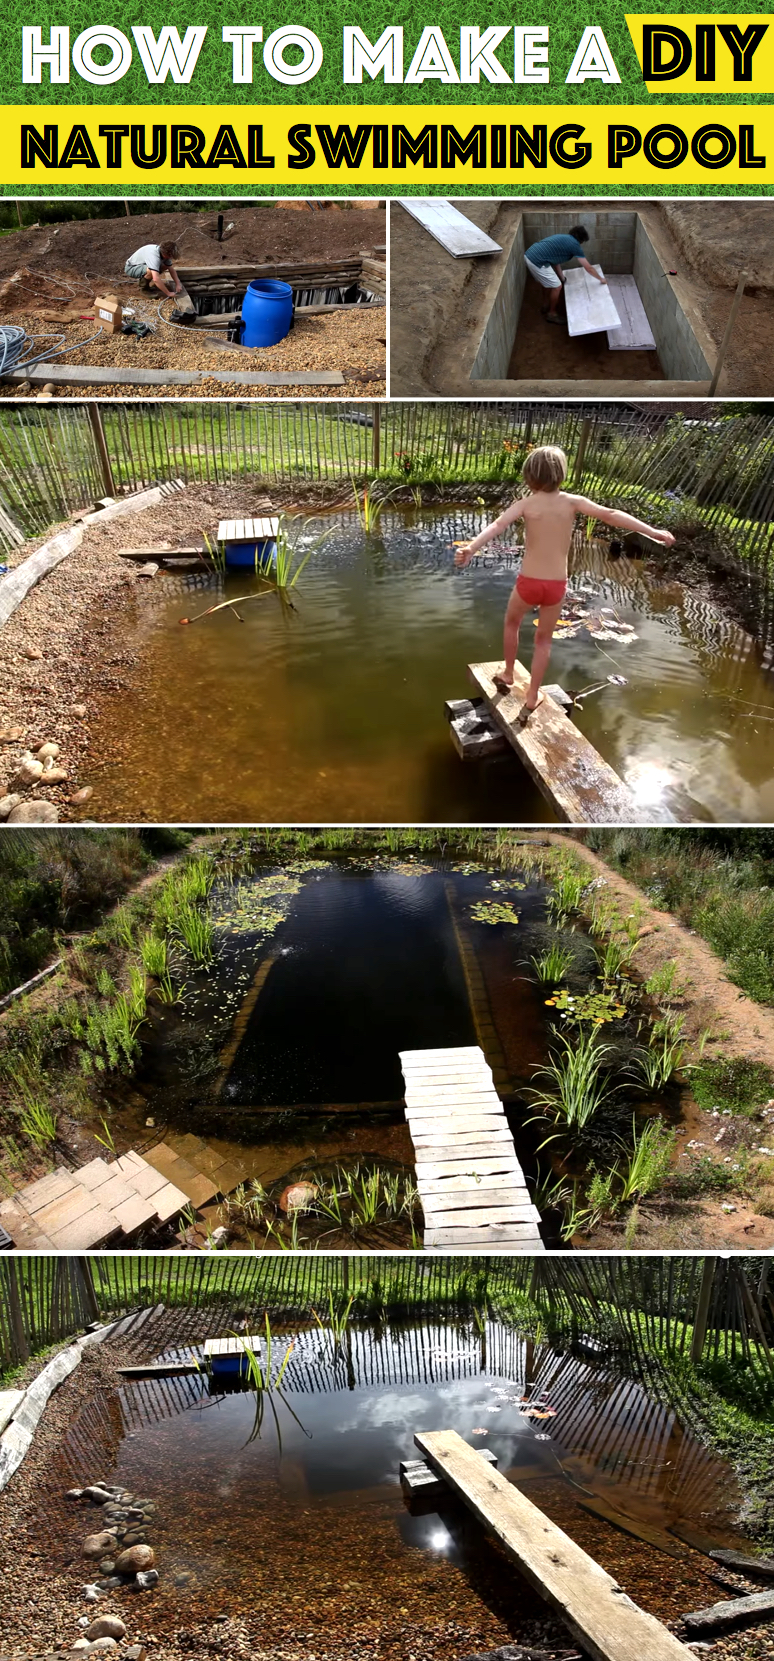 How to make a diy natural swimming pool cute diy projects for Pond swimming pool